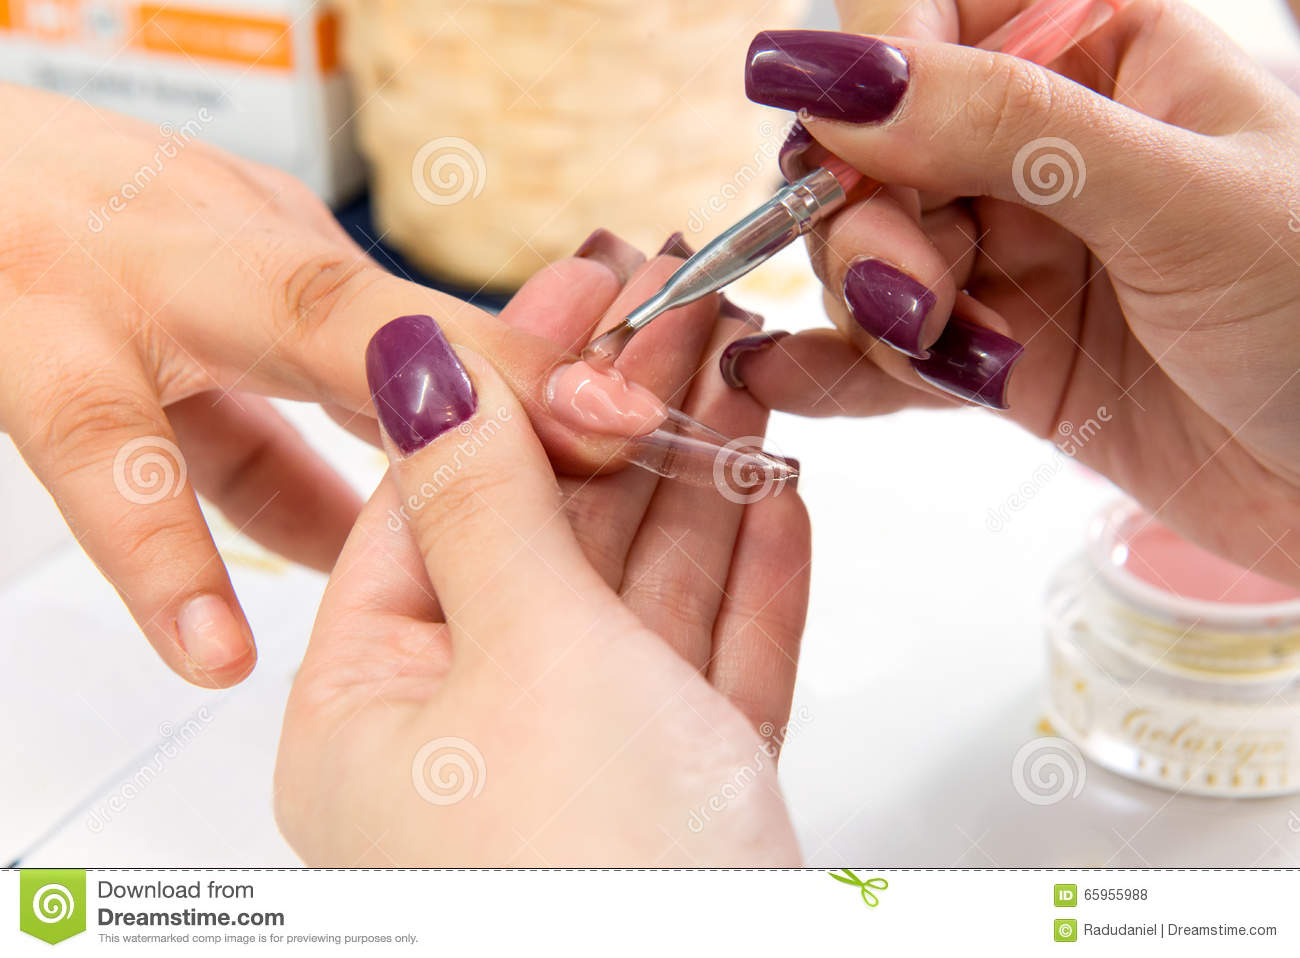 Beauty Nails Construction Whit Gel Stock Photo - Image of salon ...